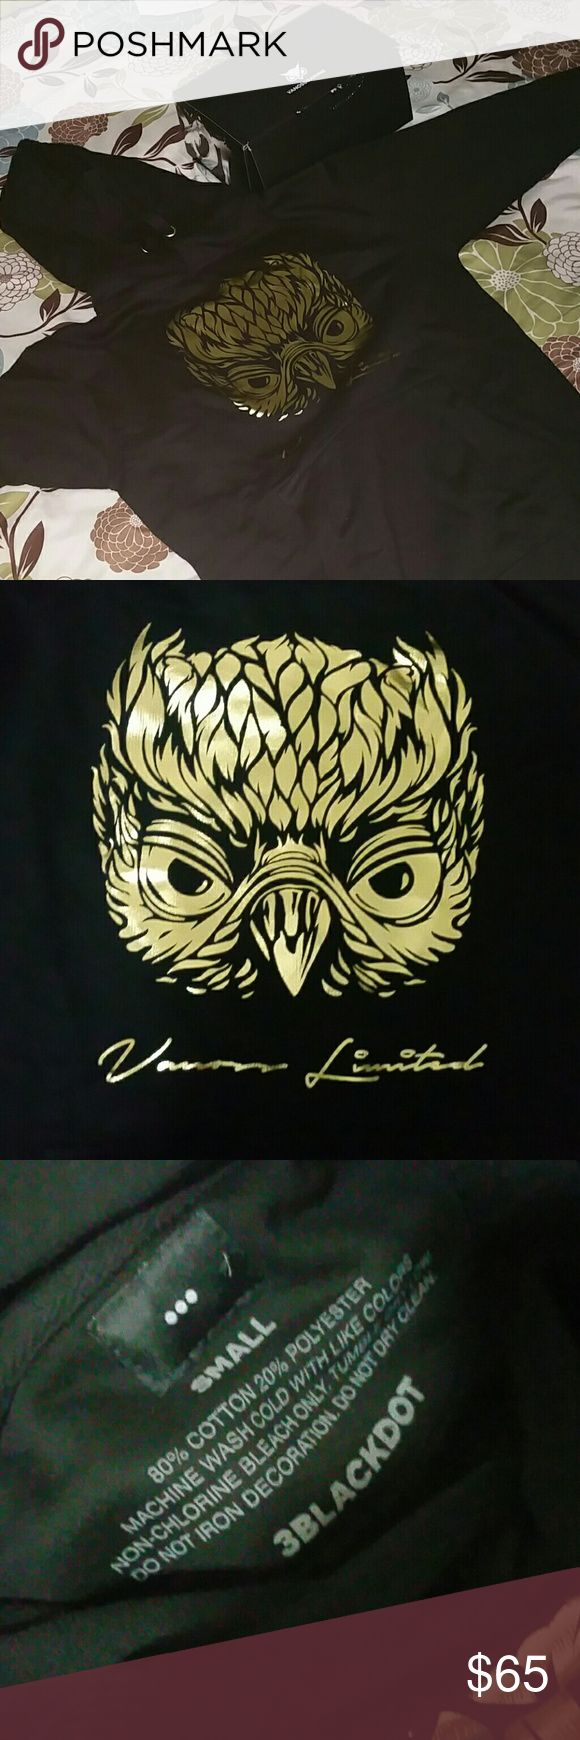 VANOSS Limited Edition Golden Owl Hoodie It's very good hoodie. If you know who Vanossgaming is thus is one of his merchandise 3BLACKDOT Other